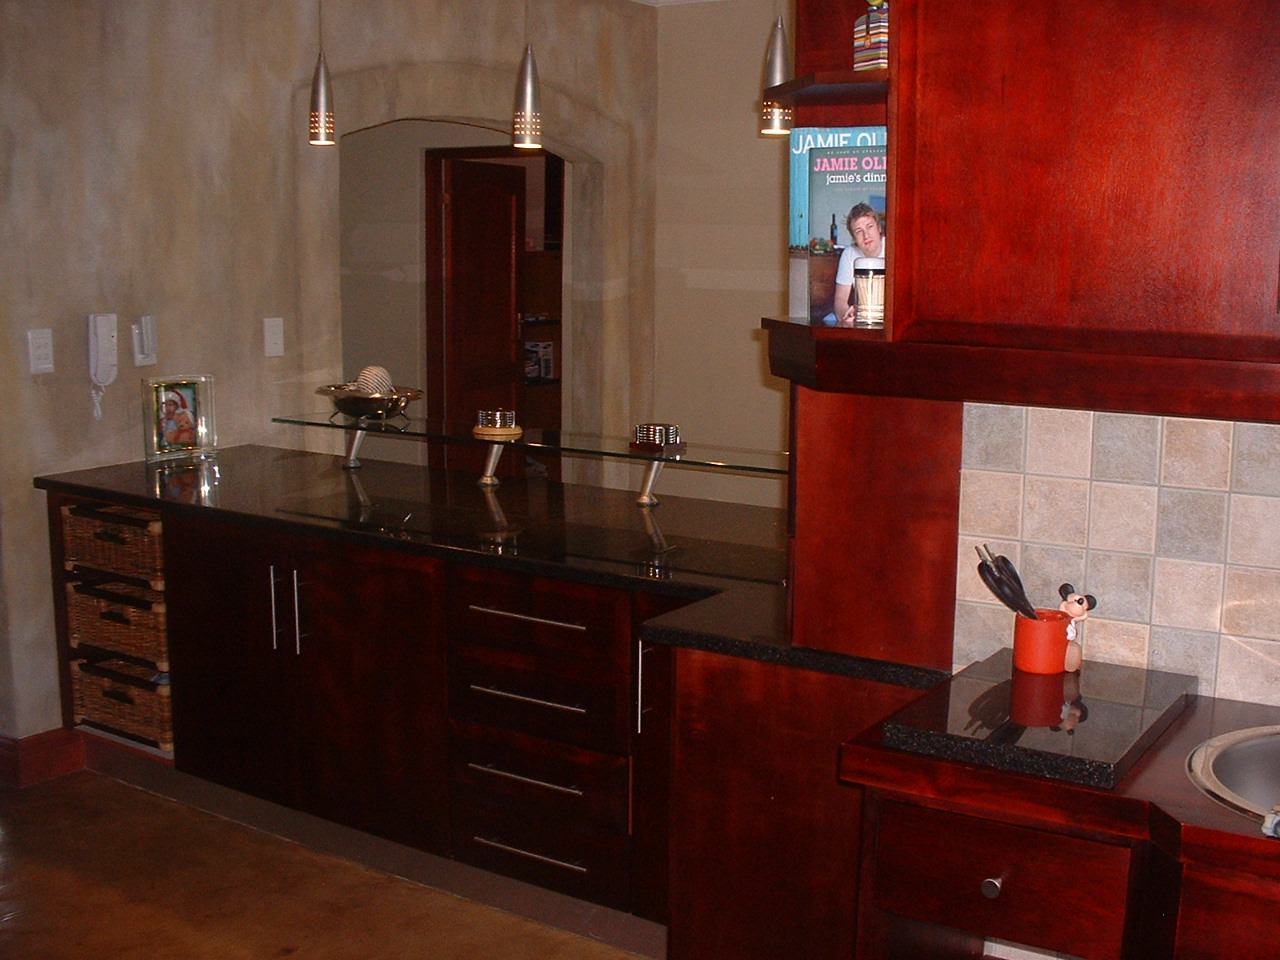 Mahogany cupboards nico 39 s kitchens for Kitchen units pretoria